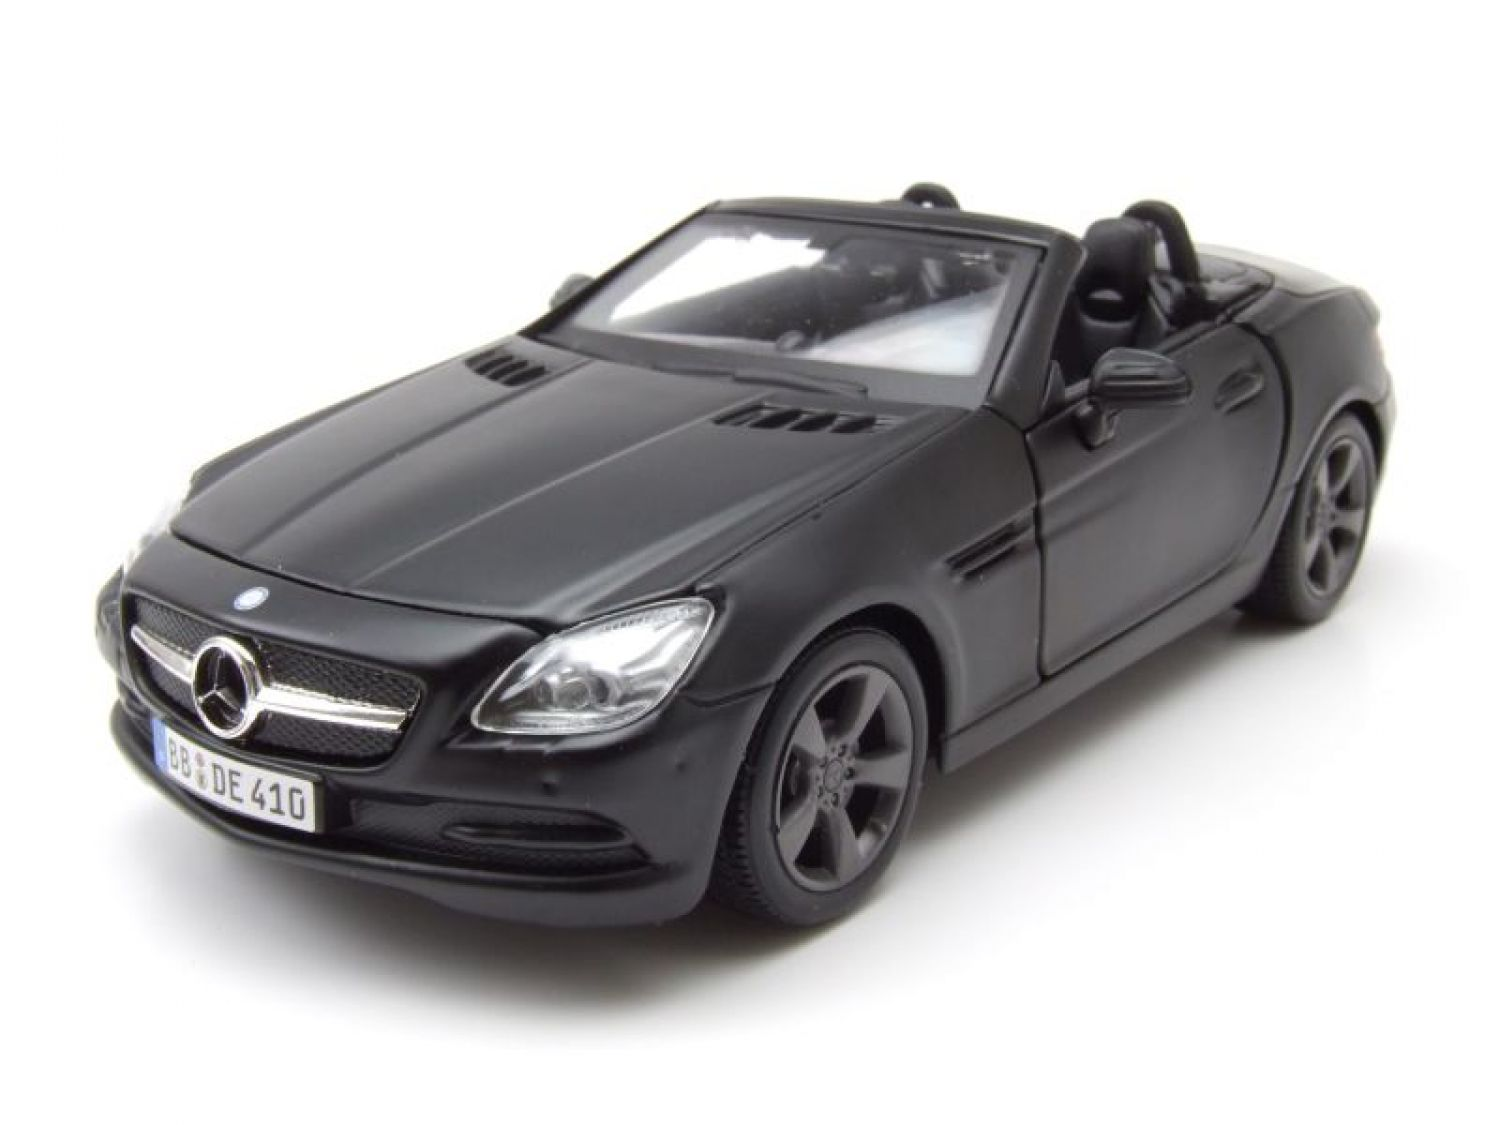 mercedes slk cabrio 2011 matt schwarz modellauto 1 24. Black Bedroom Furniture Sets. Home Design Ideas